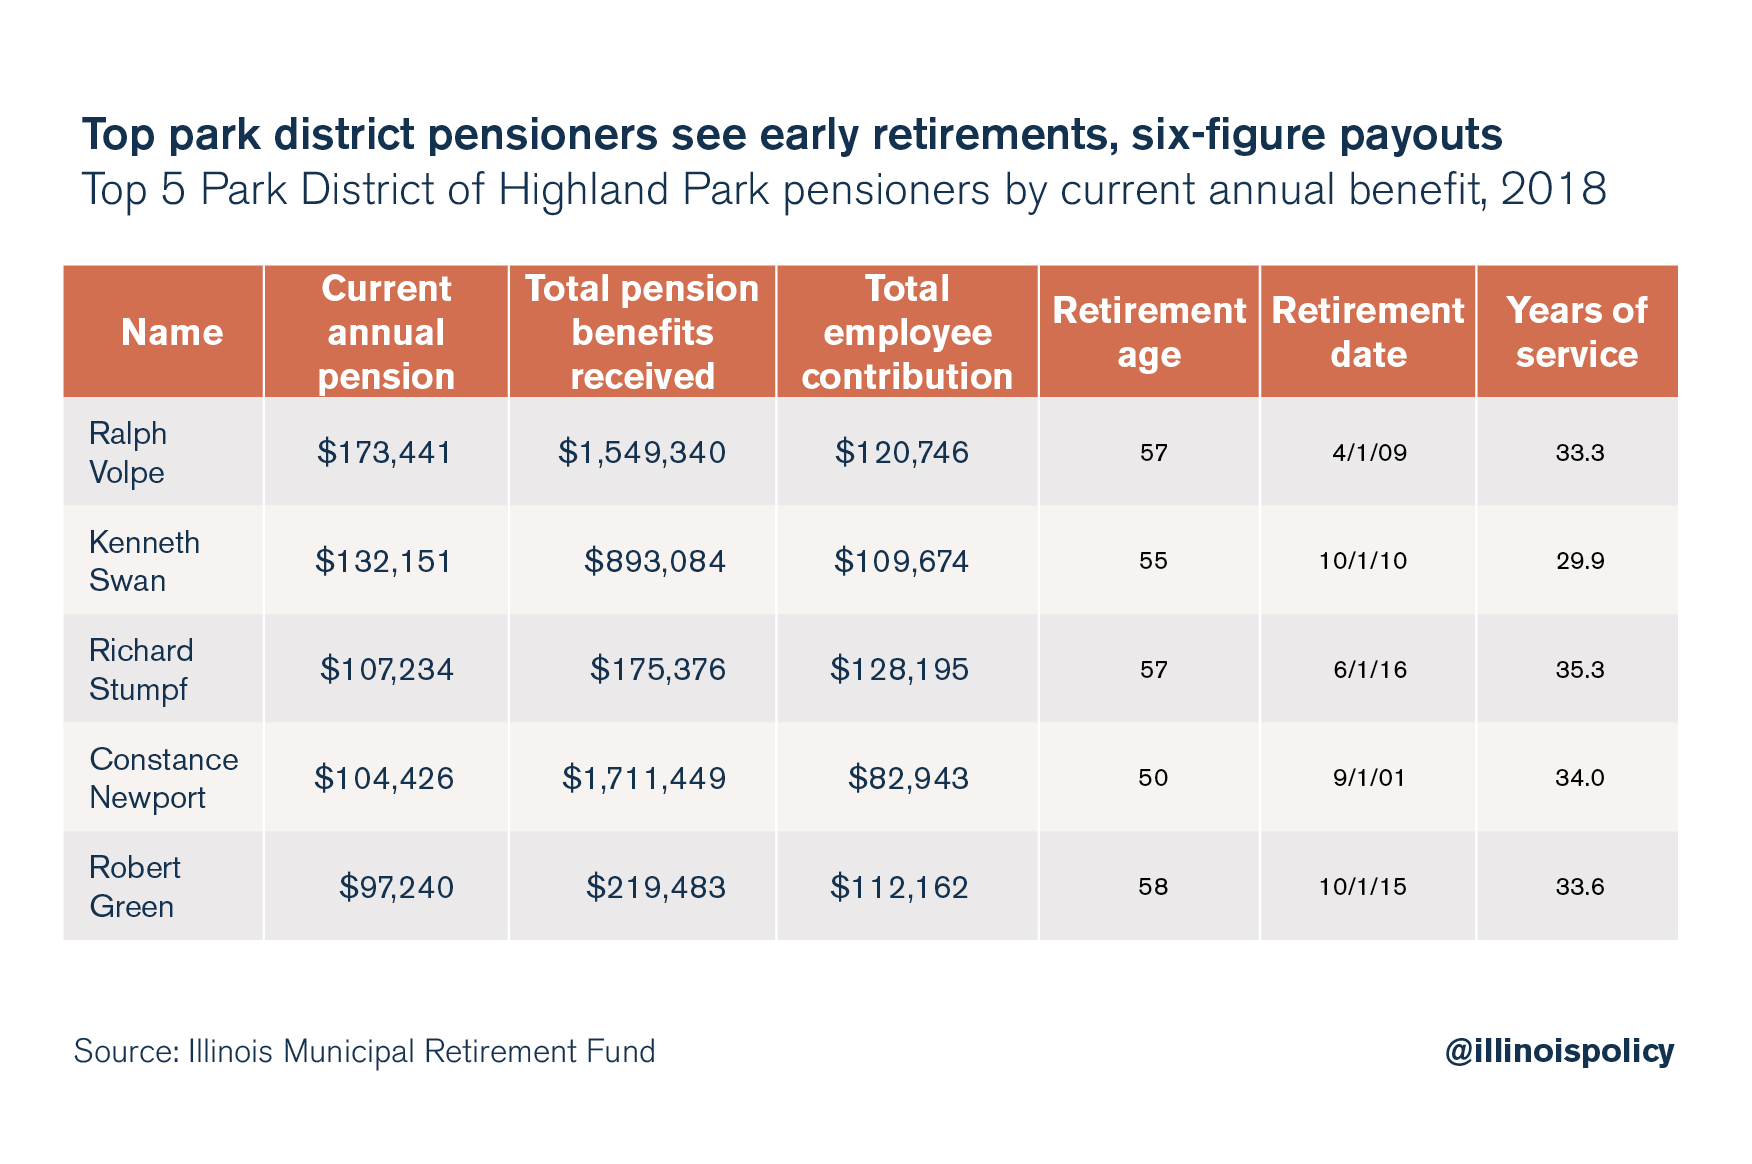 Top park district pensioners see early retirements, six-figure payouts